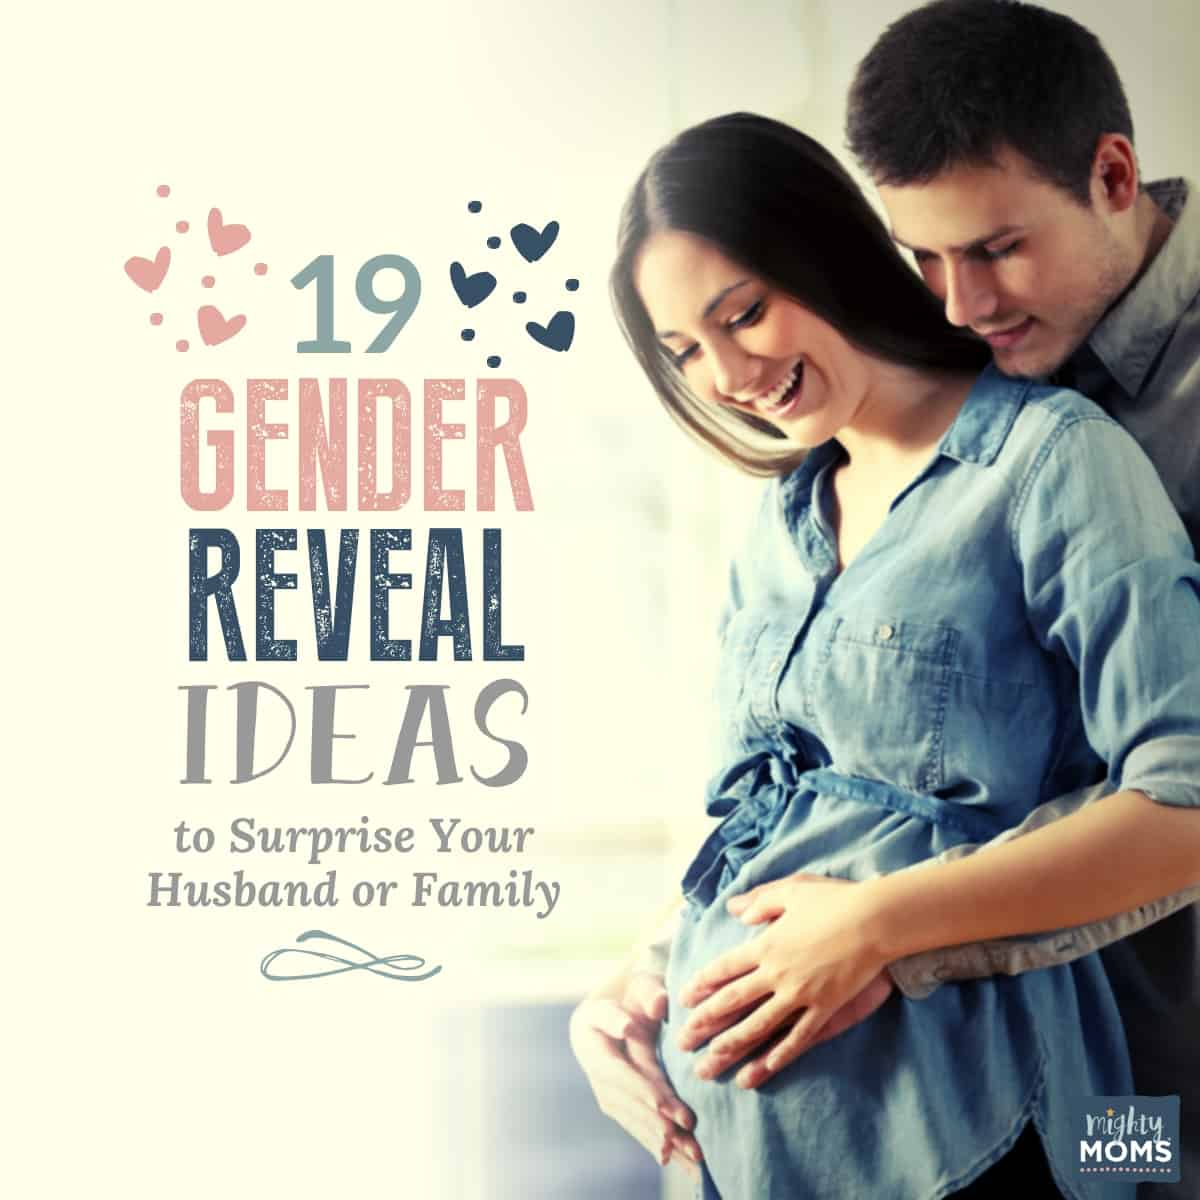 19 gender reveal ideas to try - MightyMoms.club